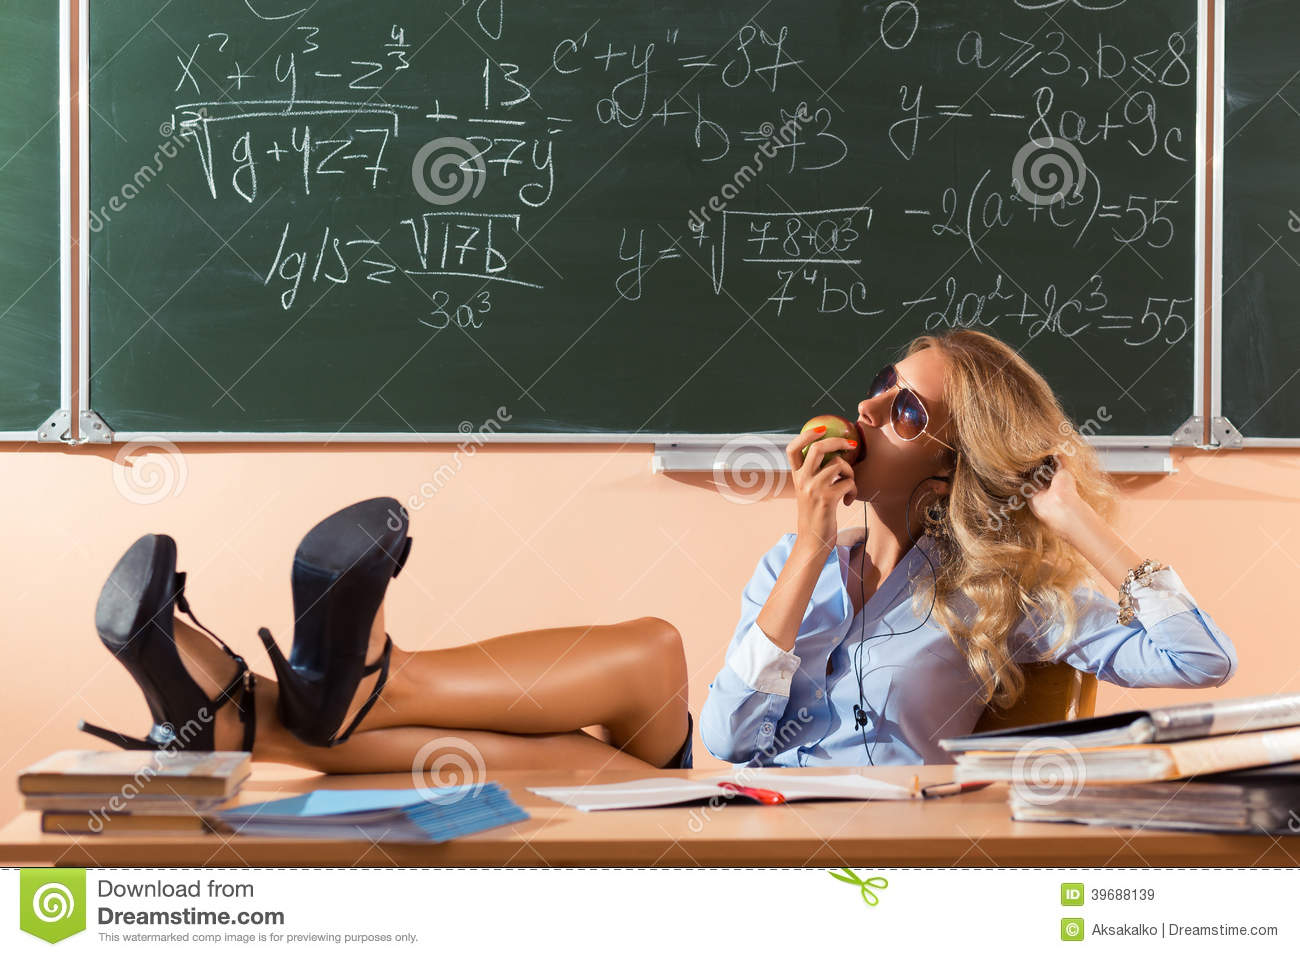 Beautiful Young Sexy Teacher Stock Photo - Image: 39688139: http://www.dreamstime.com/royalty-free-stock-images-beautiful-young-sexy-teacher-resting-classes-image39688139